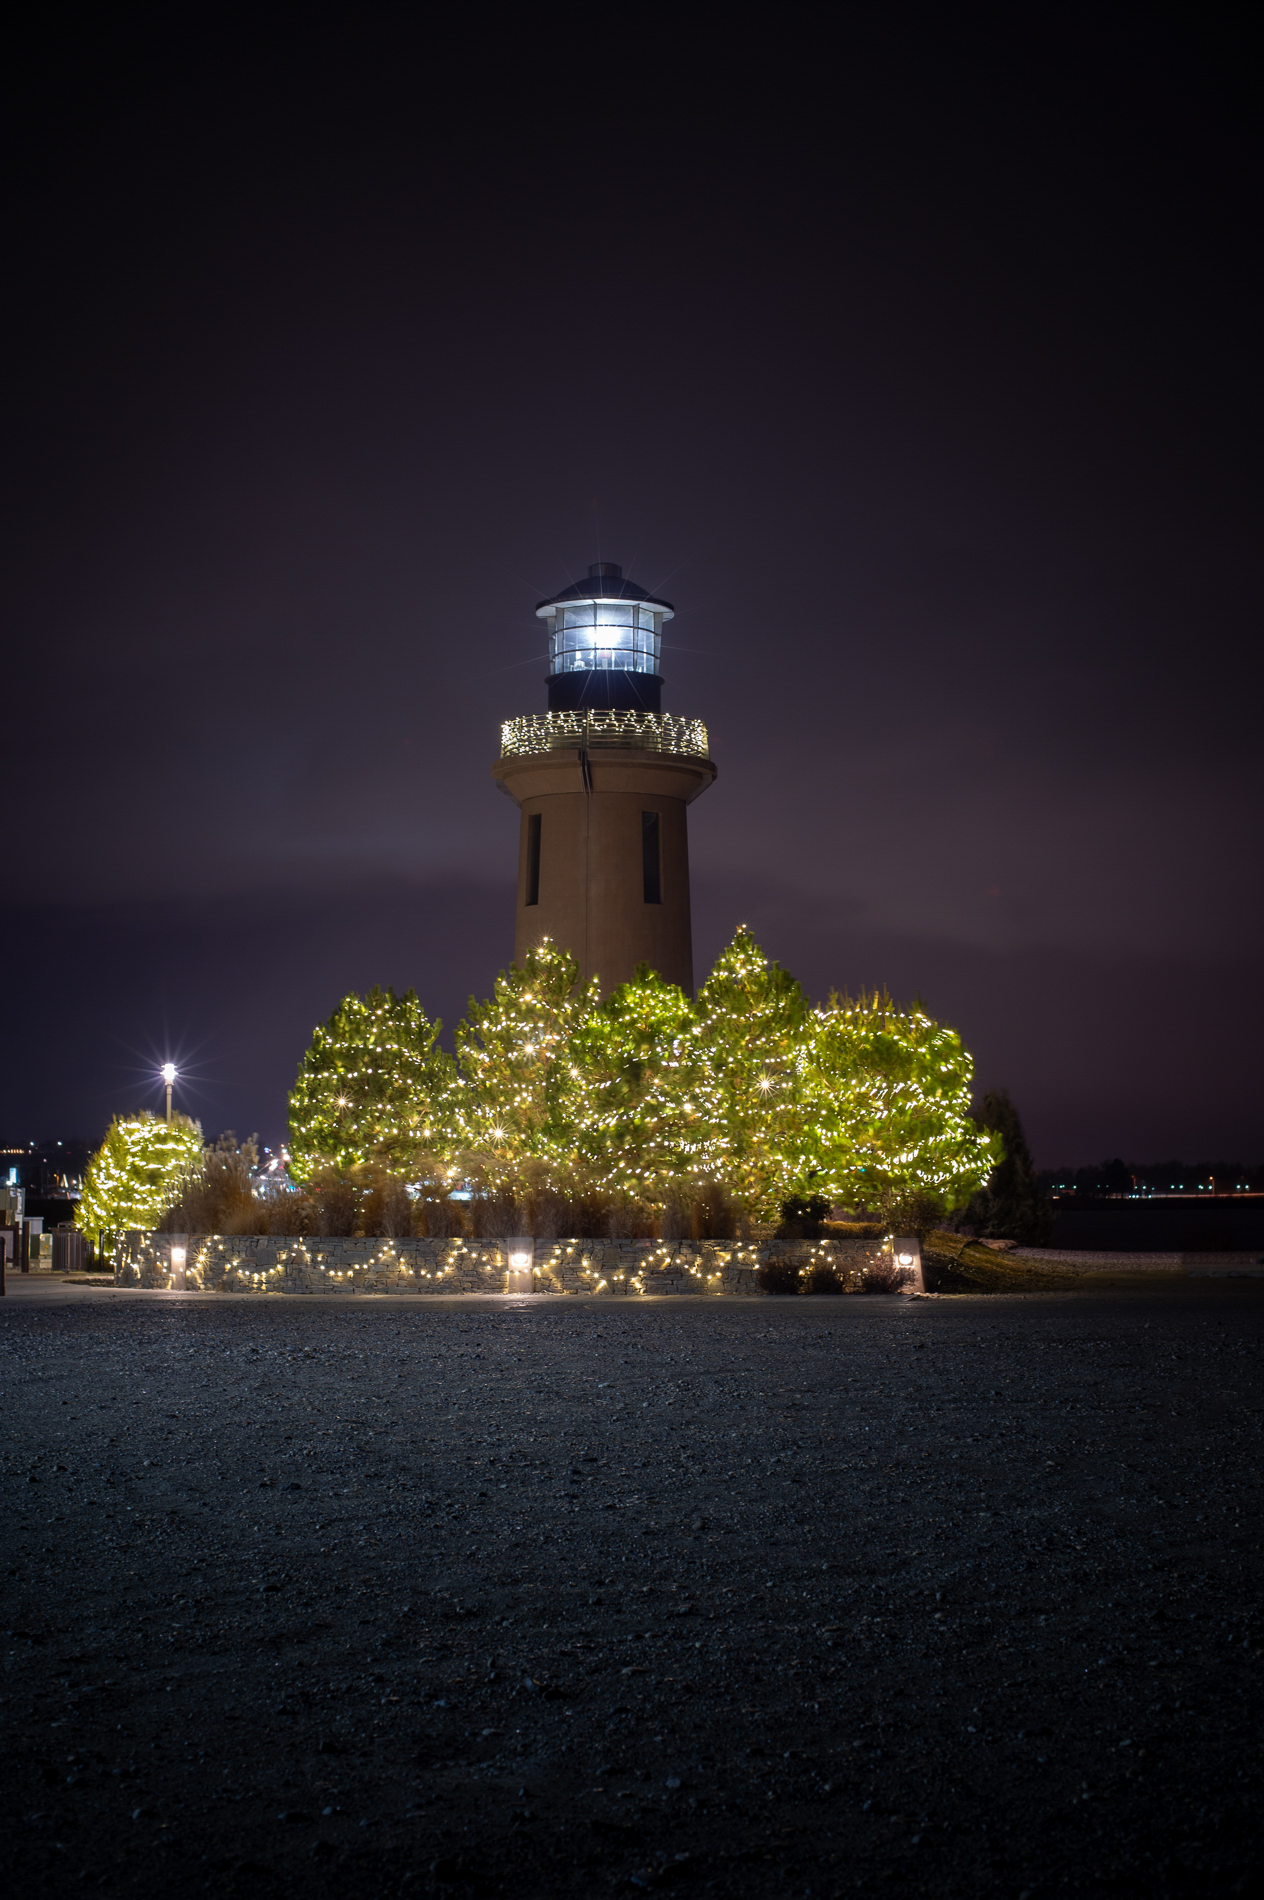 The Lighthouse at Christmas